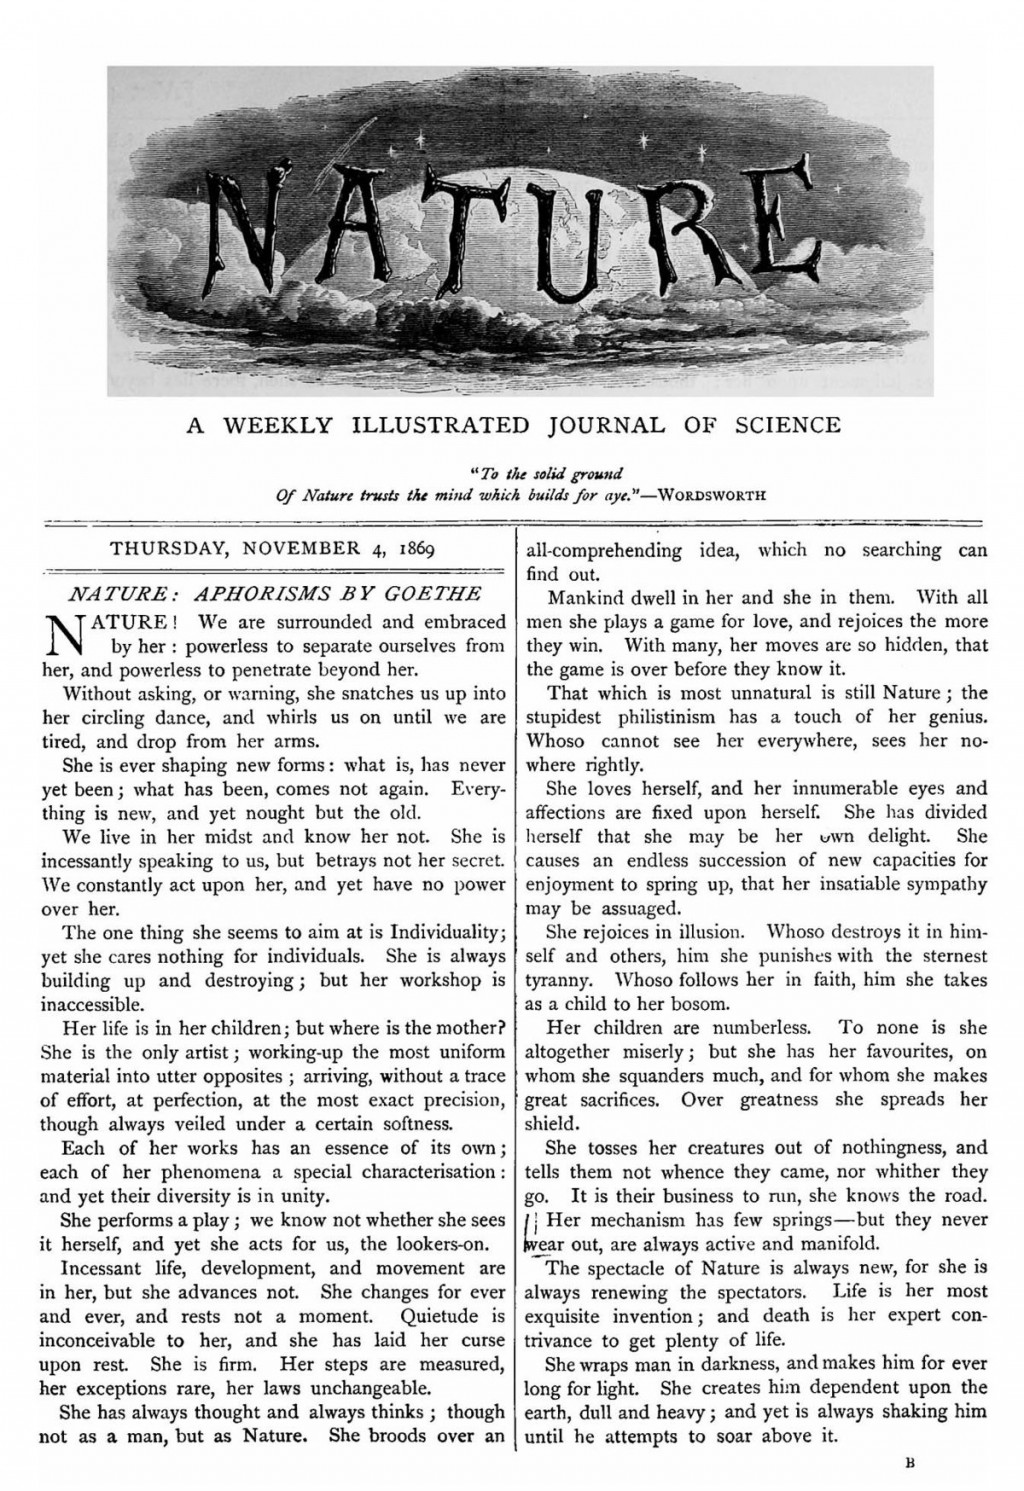 010 Computer Science Researchs Pdf Free Download 1200px Nature Cover2c November 42c 1869 Remarkable Research Papers Large